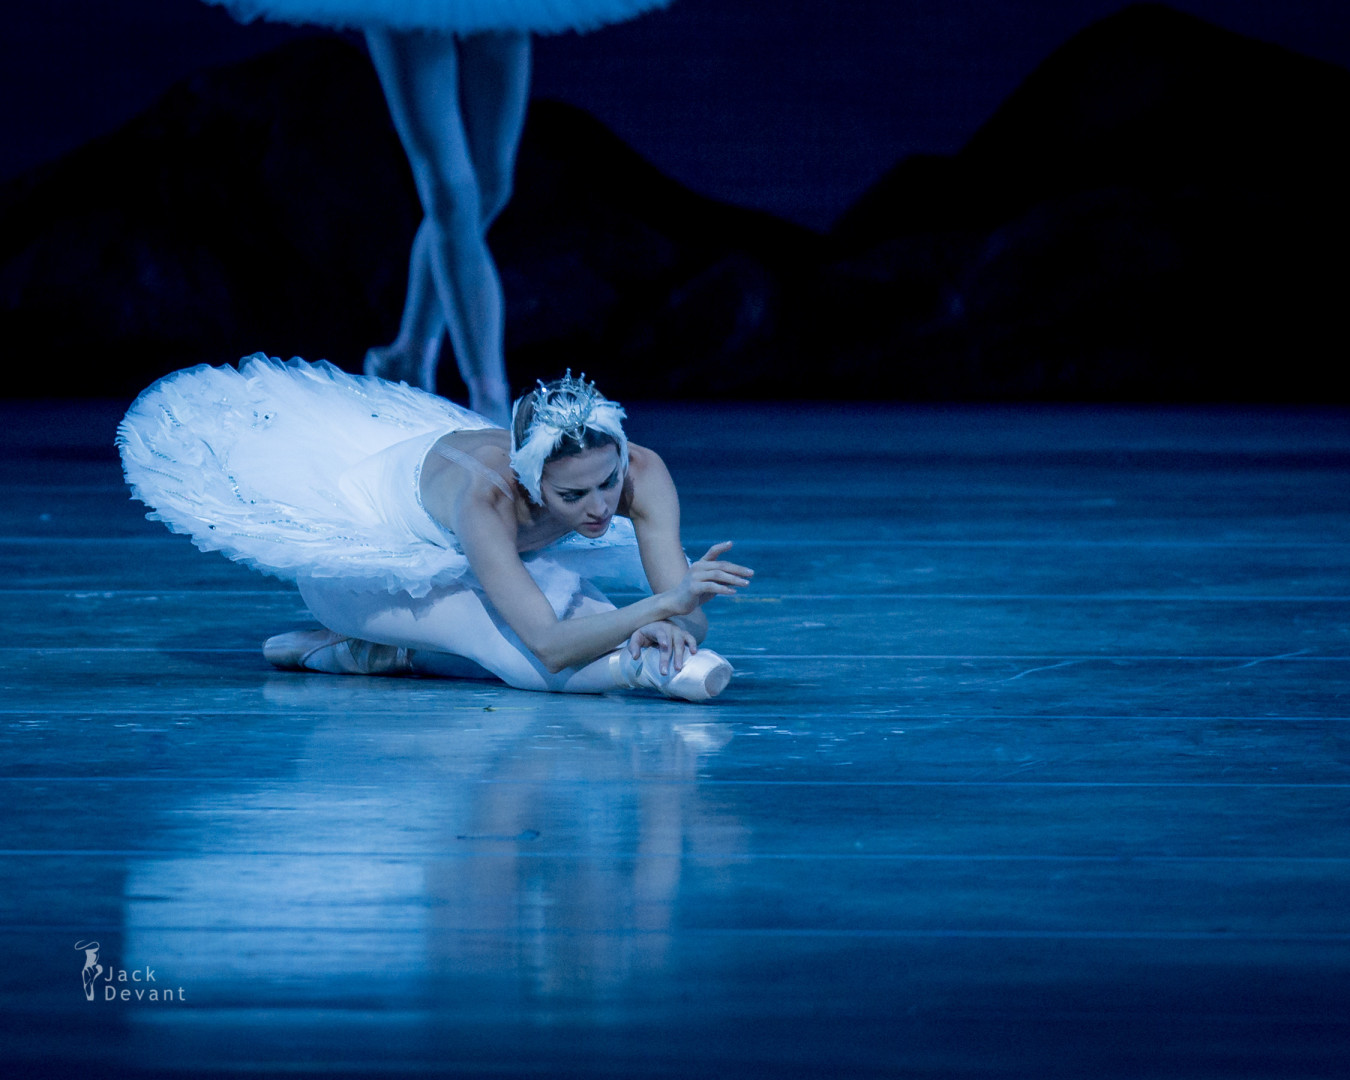 Alina Somova and Danila Korsuntsev in Swan Lake last act